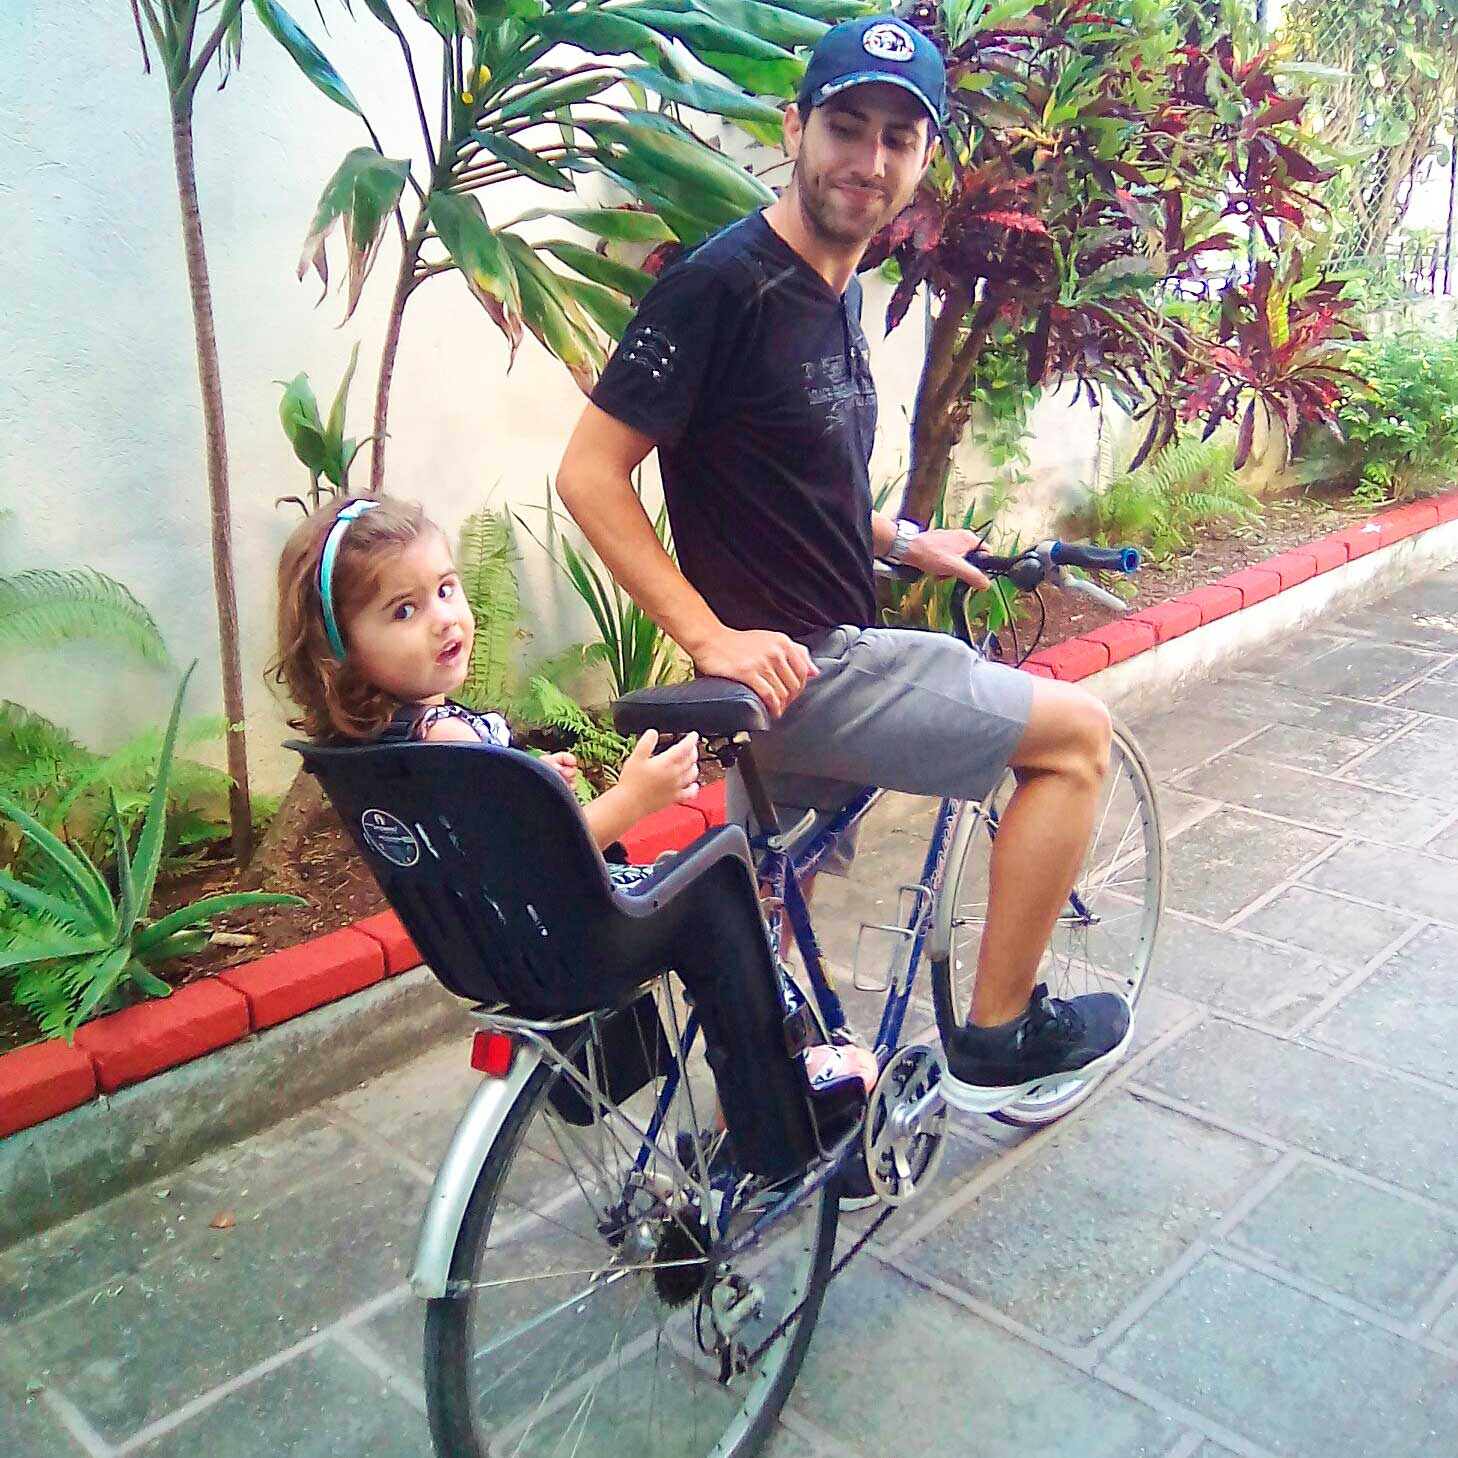 Chair for children in tours or rental. Bike Rental & Tous Havana